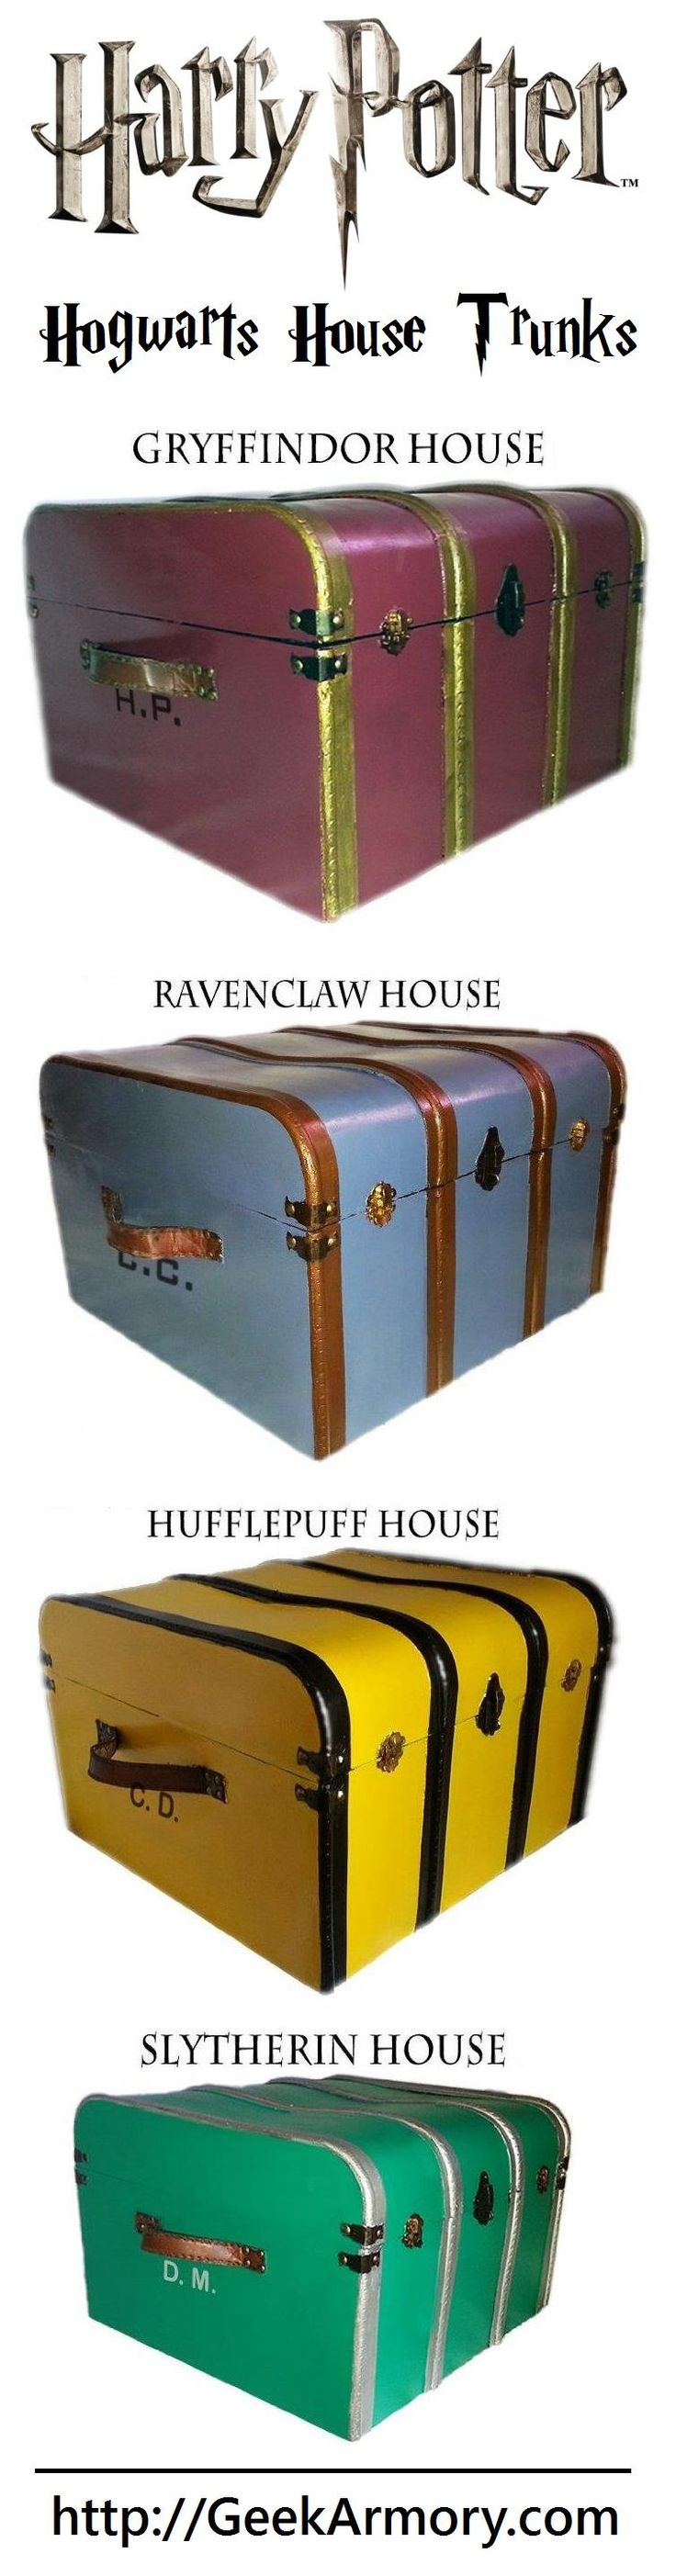 Harry potter valises des 4 maisons de poudlard harry for Decoration maison harry potter